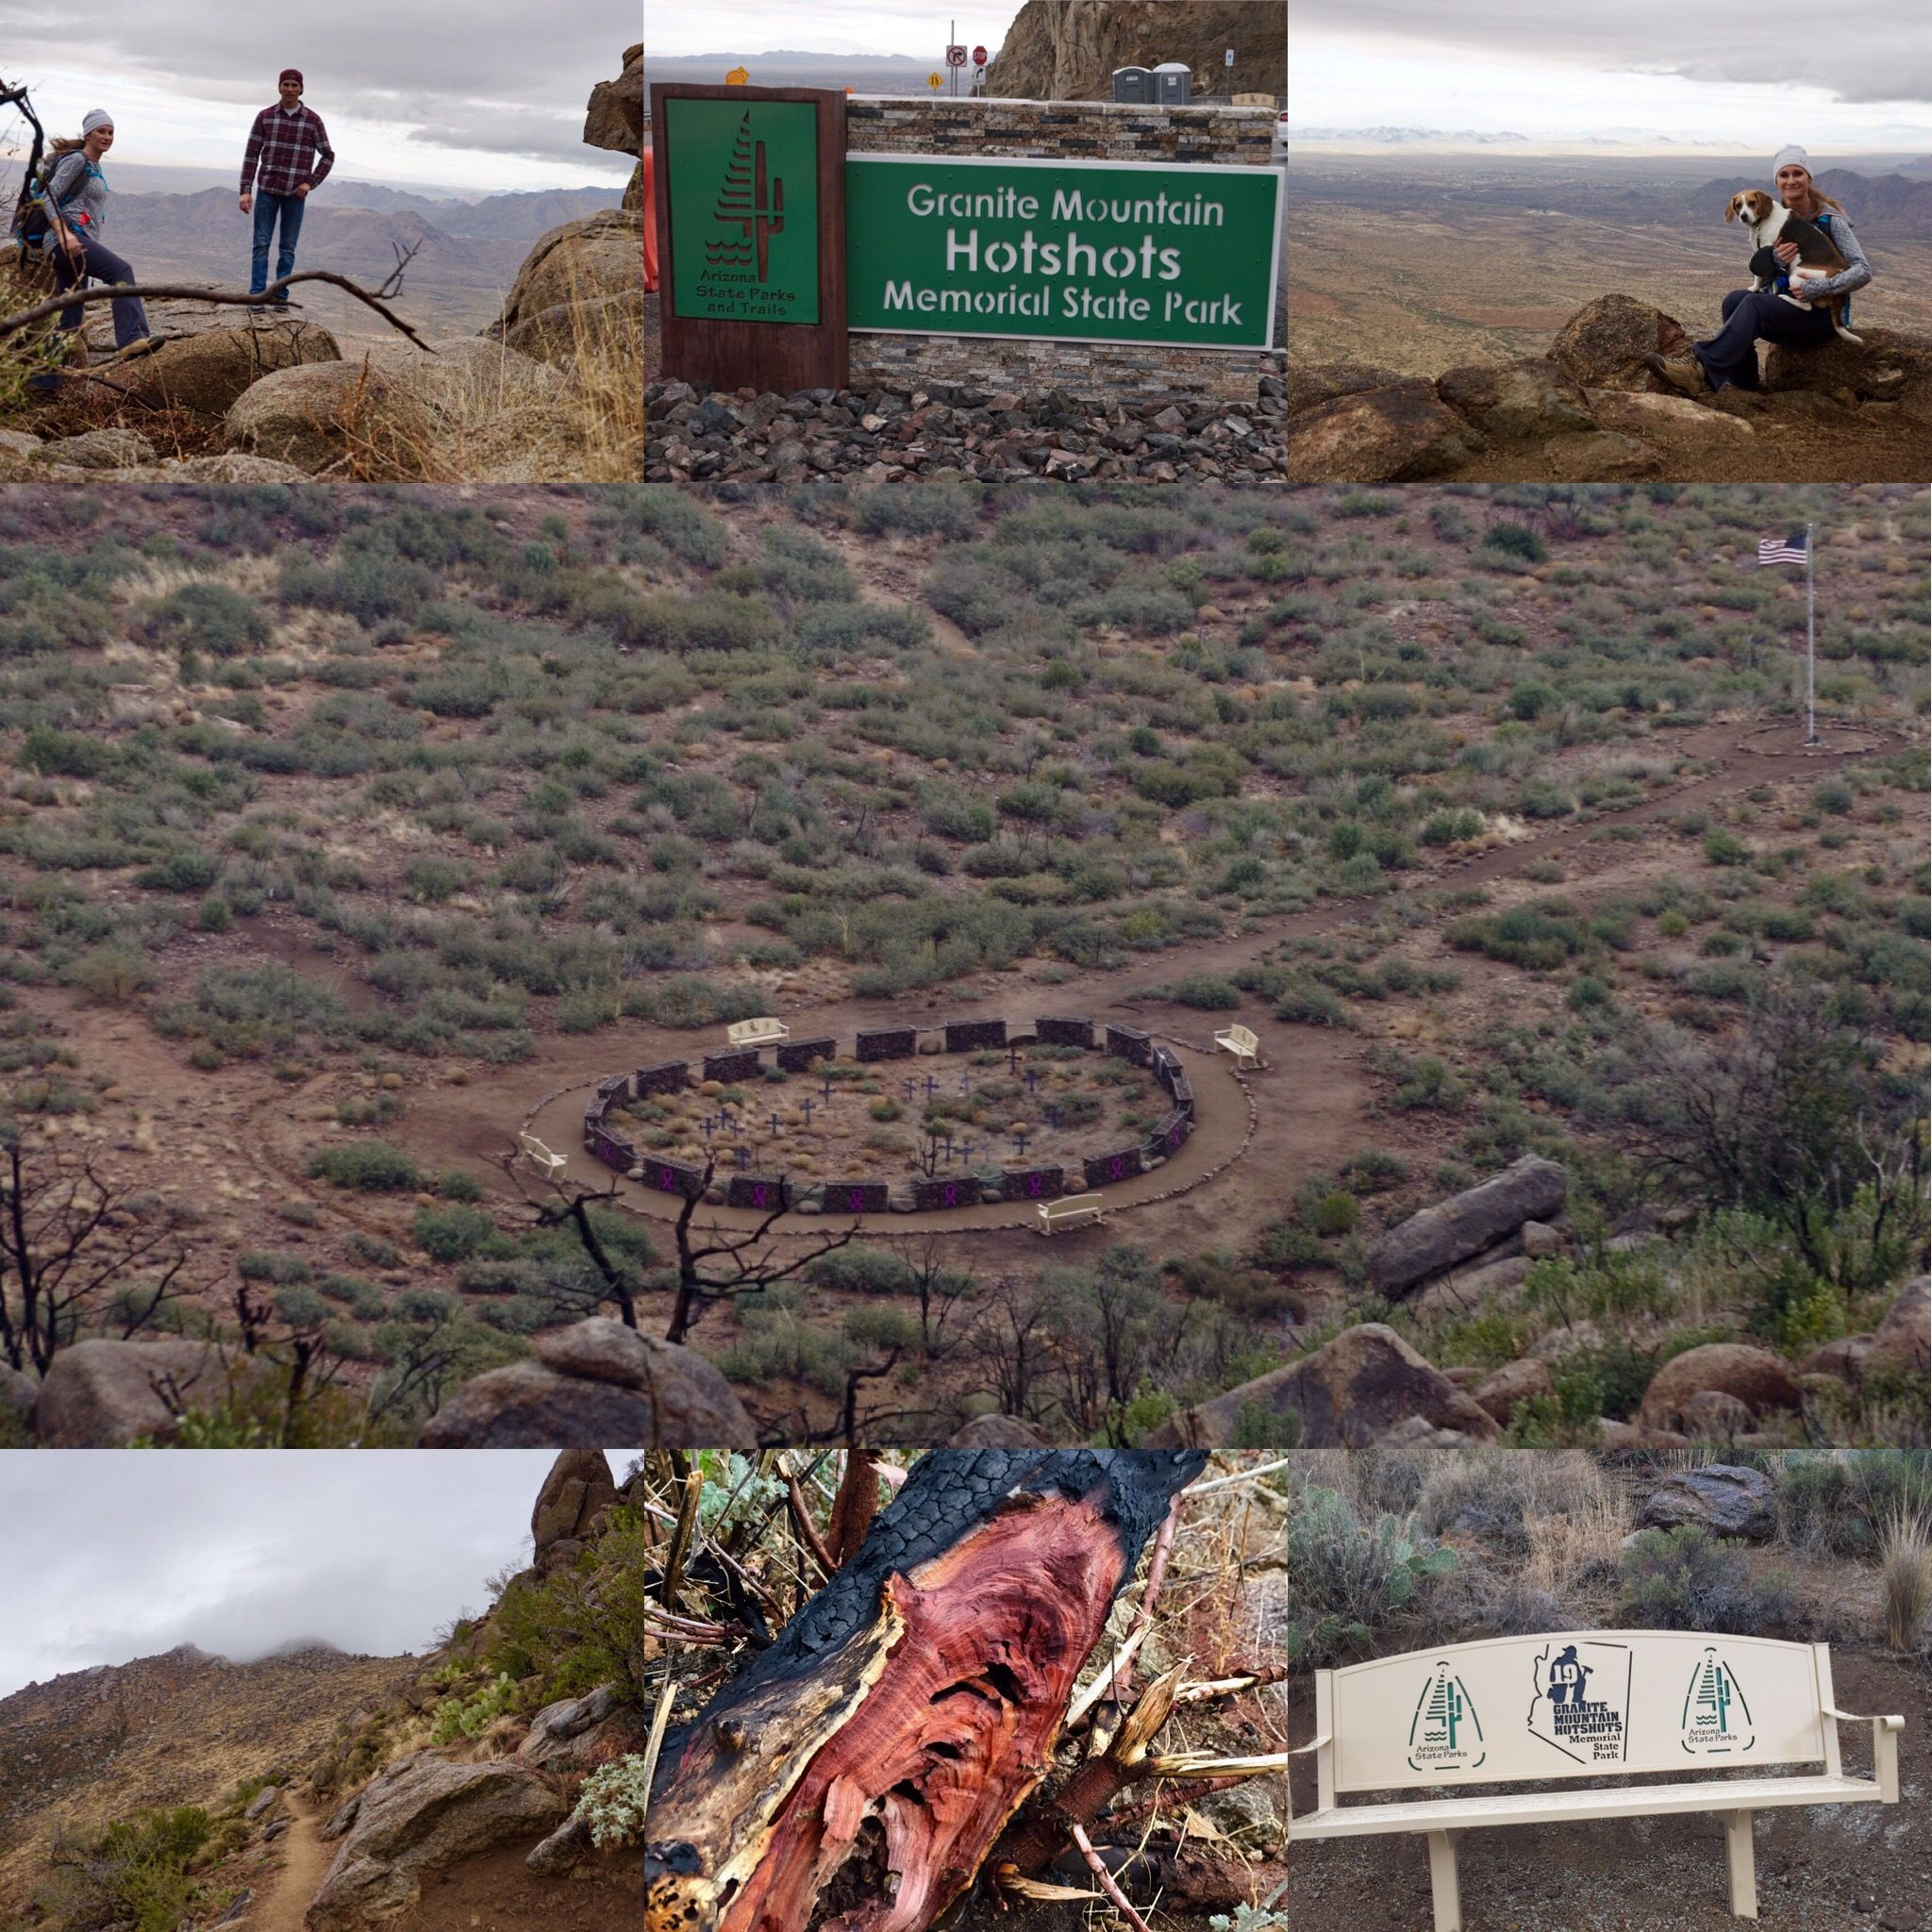 Granite mountain hot shot trail. Yarnell Arizona. Very beautiful memorial for those firefighters that lost their lives